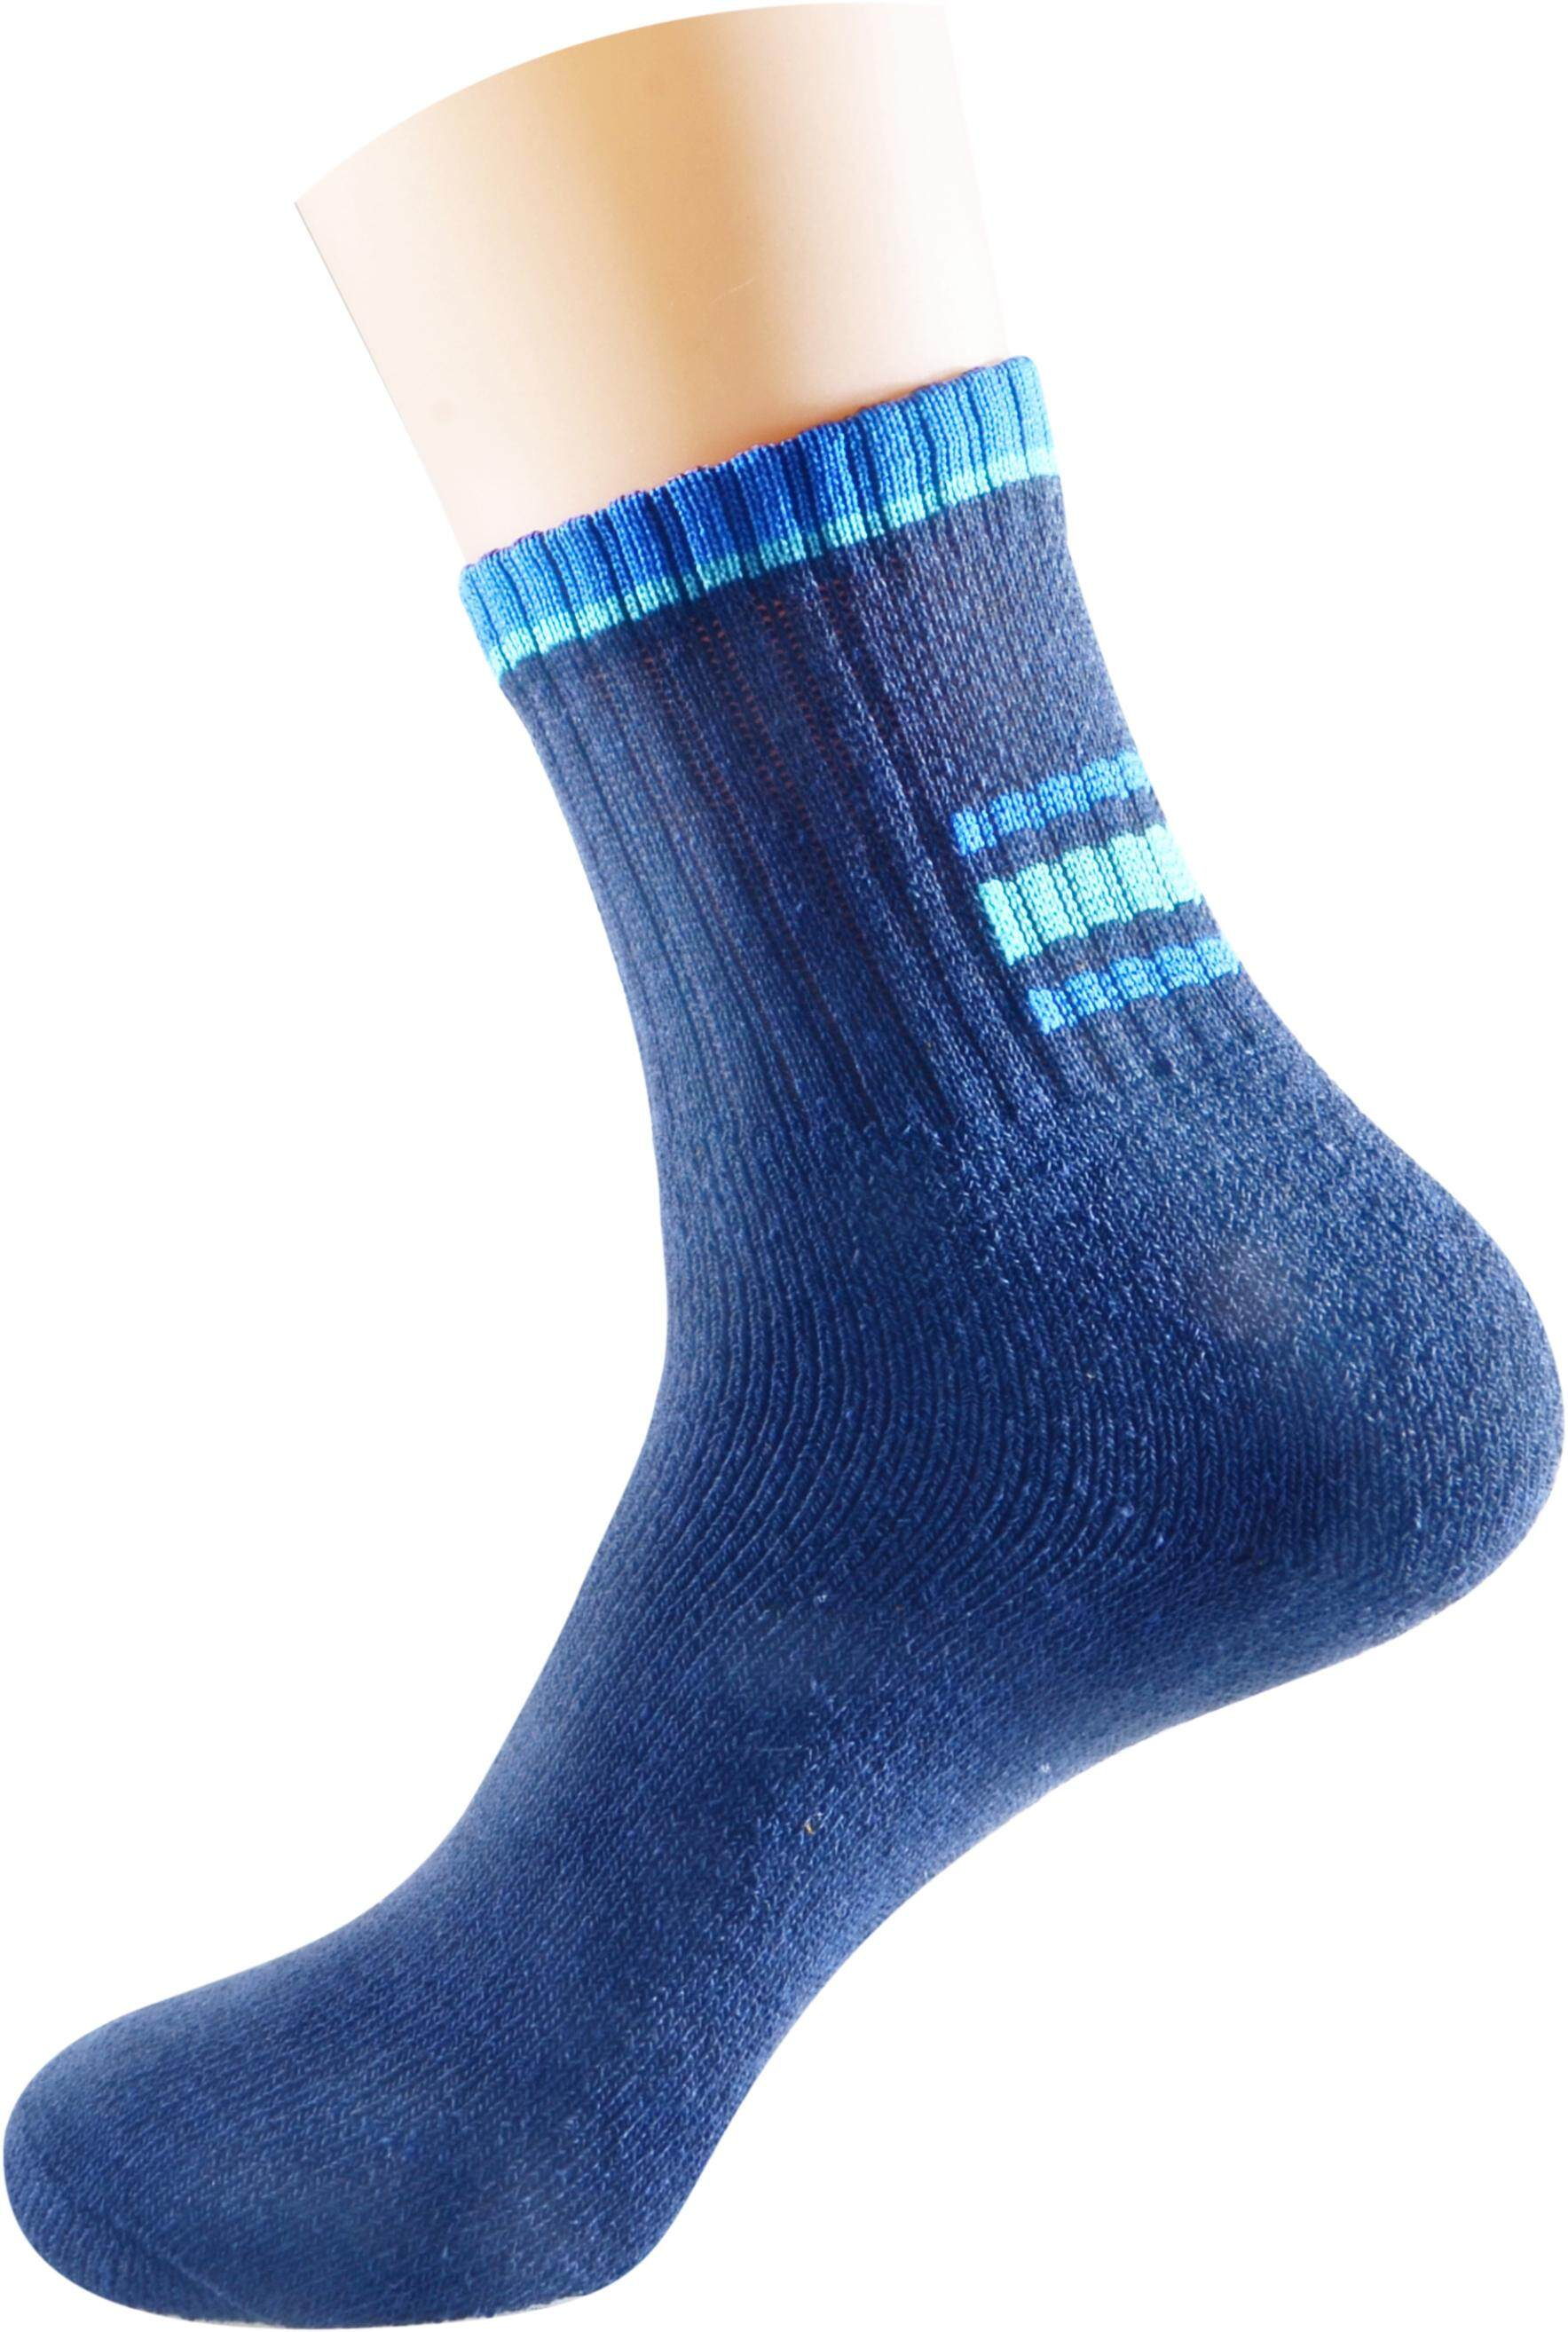 Semlouis Sport Quarter Crew Socks - Basic Design / PAIR